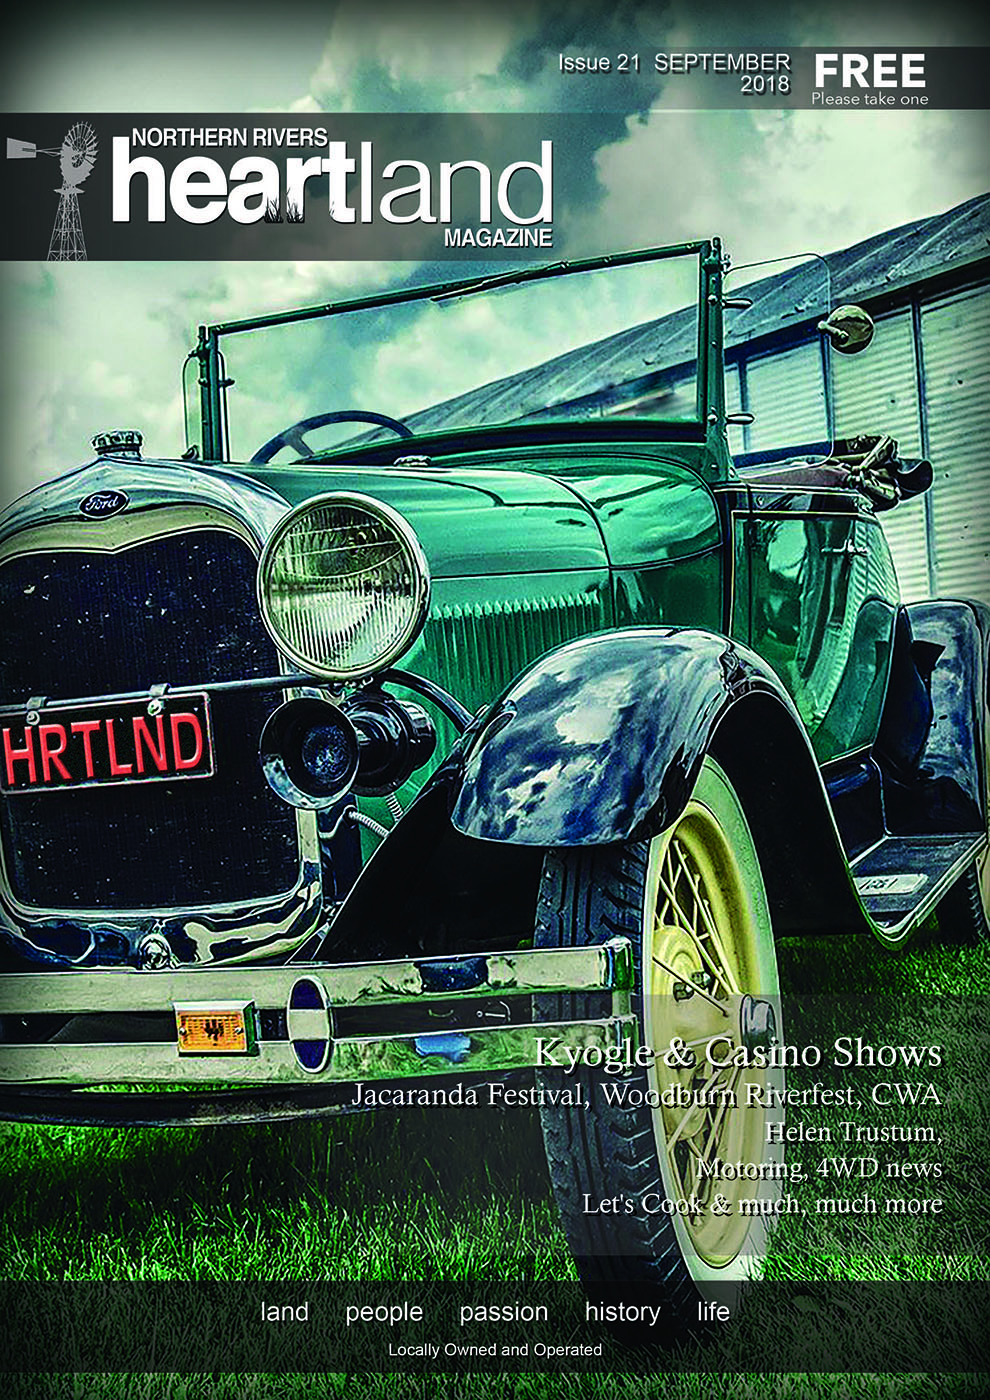 Heartland eMagazine Issue 21, News, Events & Advertising NSW Northern Rivers, Advertising Lismore, Advertising Byron Bay Lismore Advertising, Ballina Advertising